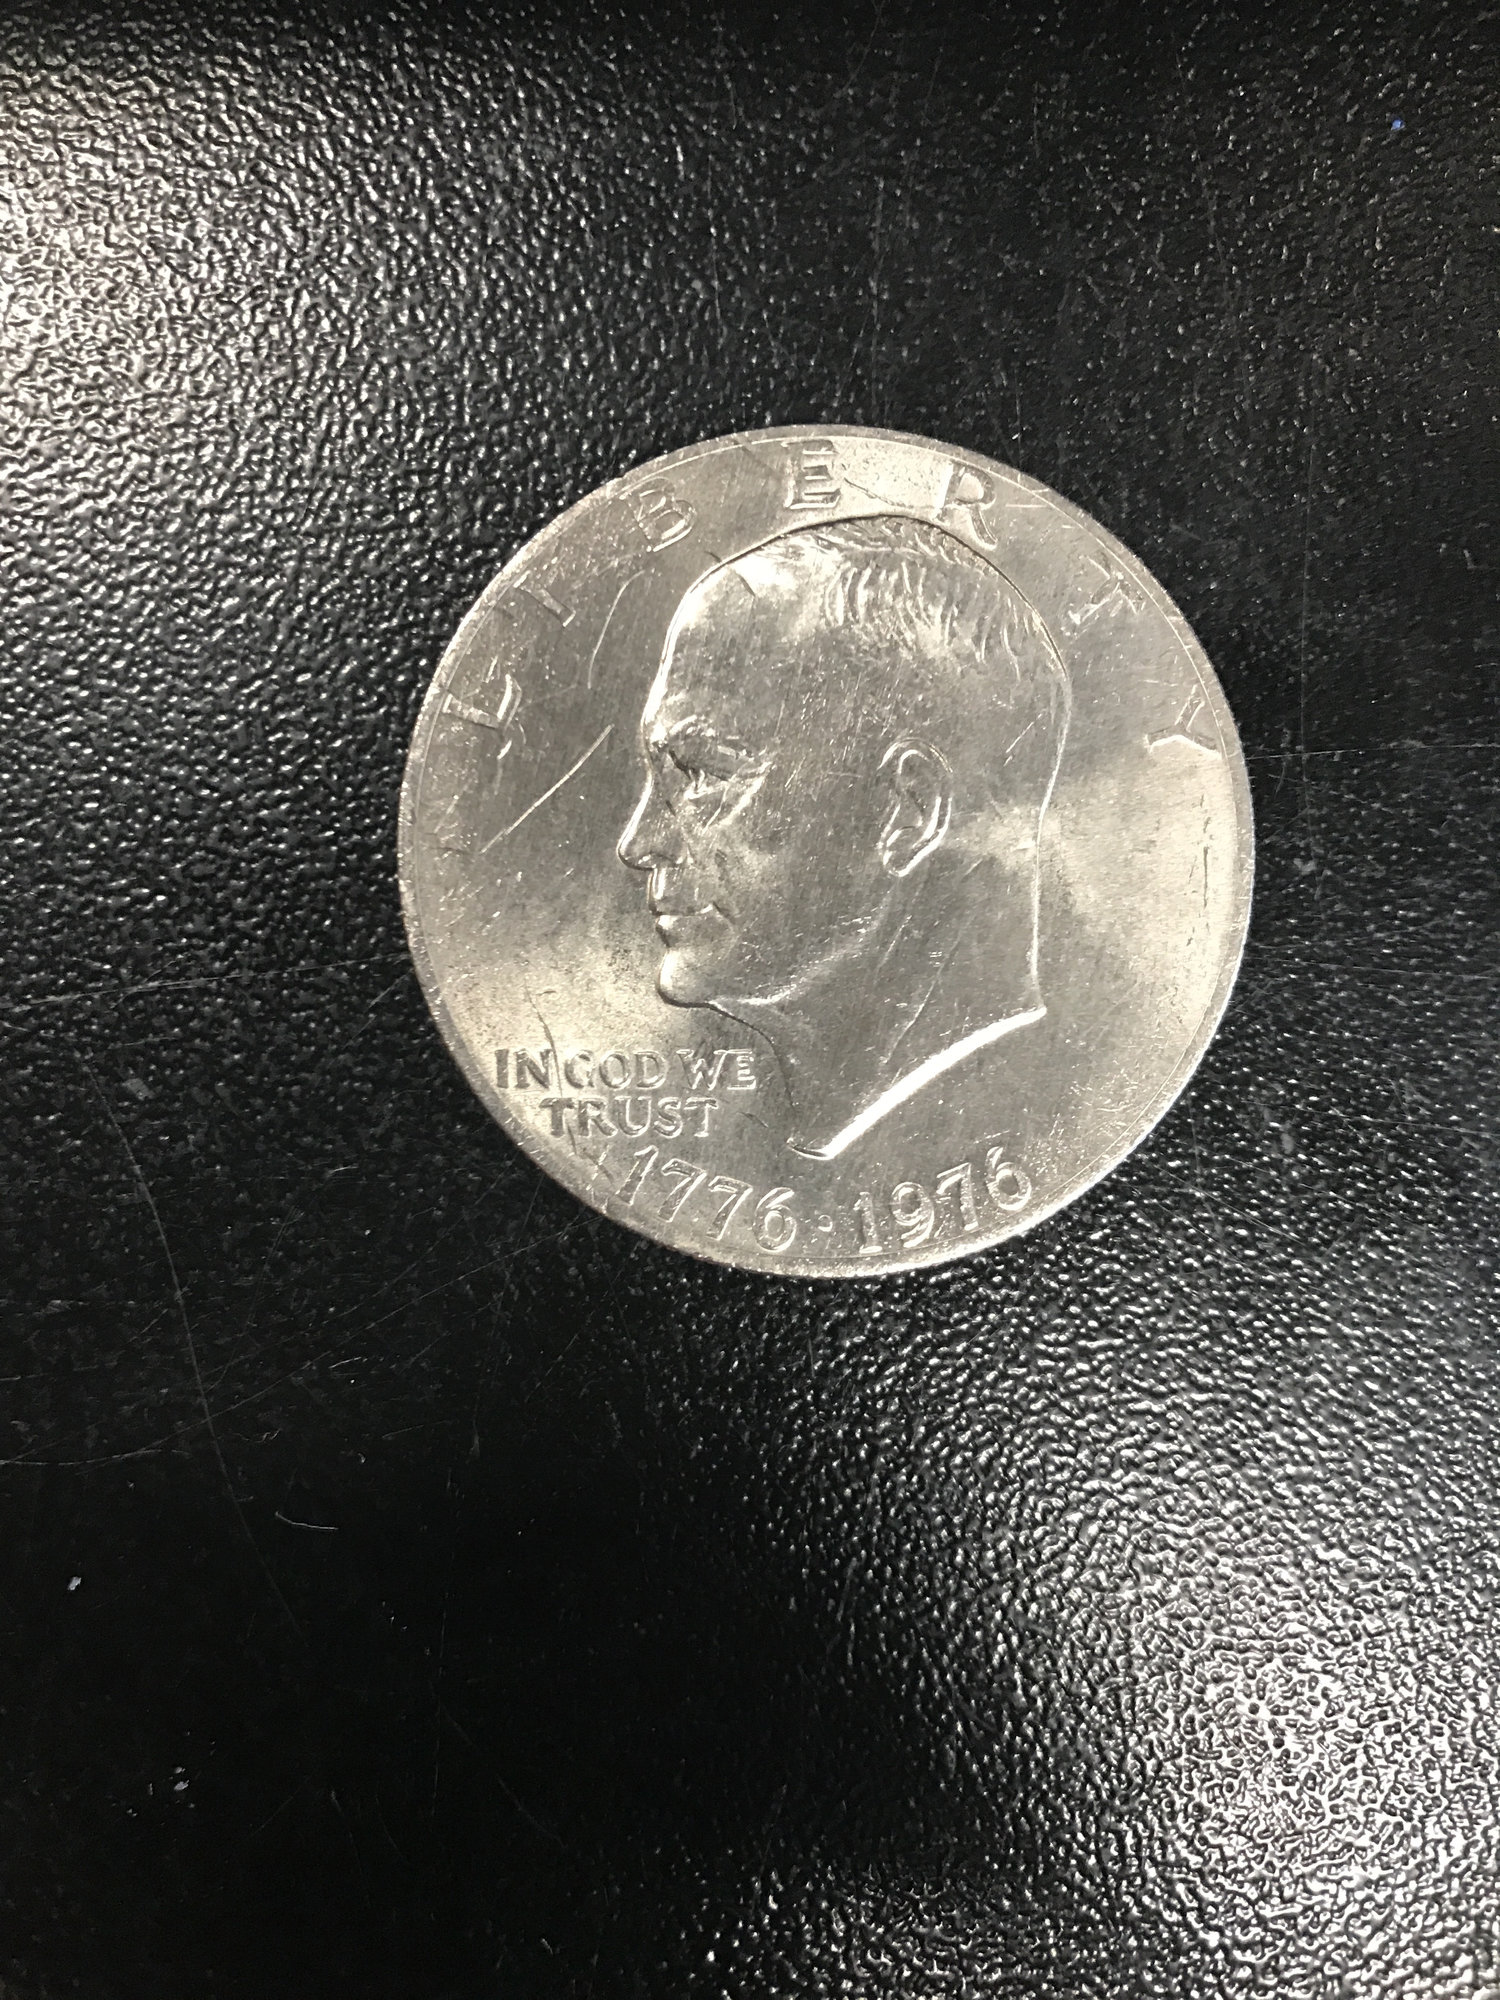 1776 1976 Eisenhower Dollar Coin Type 2 No Mint Mark Collectors Universe,Soy Cheesecake